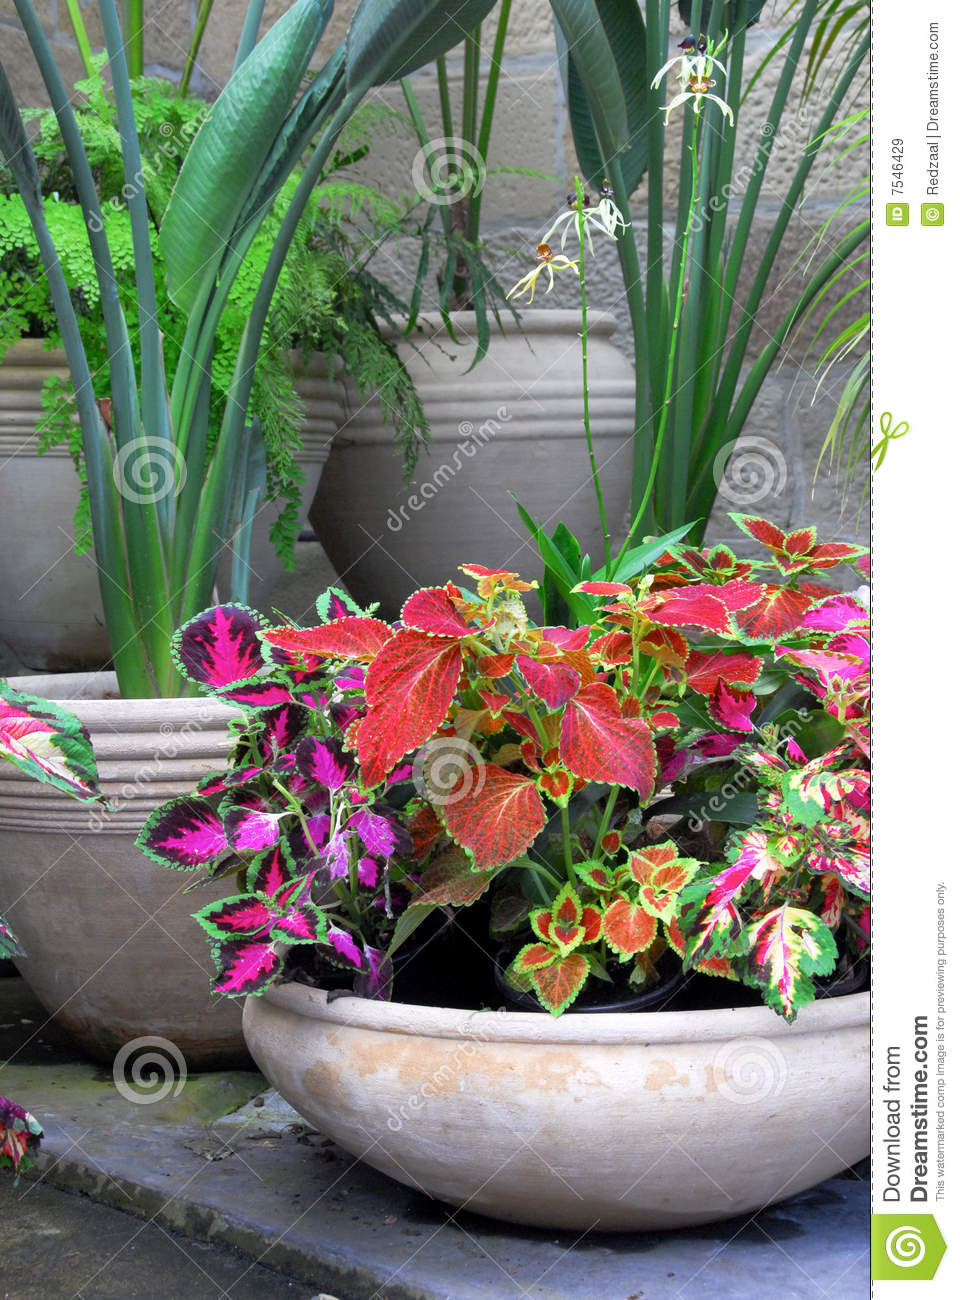 garden pots with coleus plants royalty free stock images flower garden clipart png flower garden clipart border